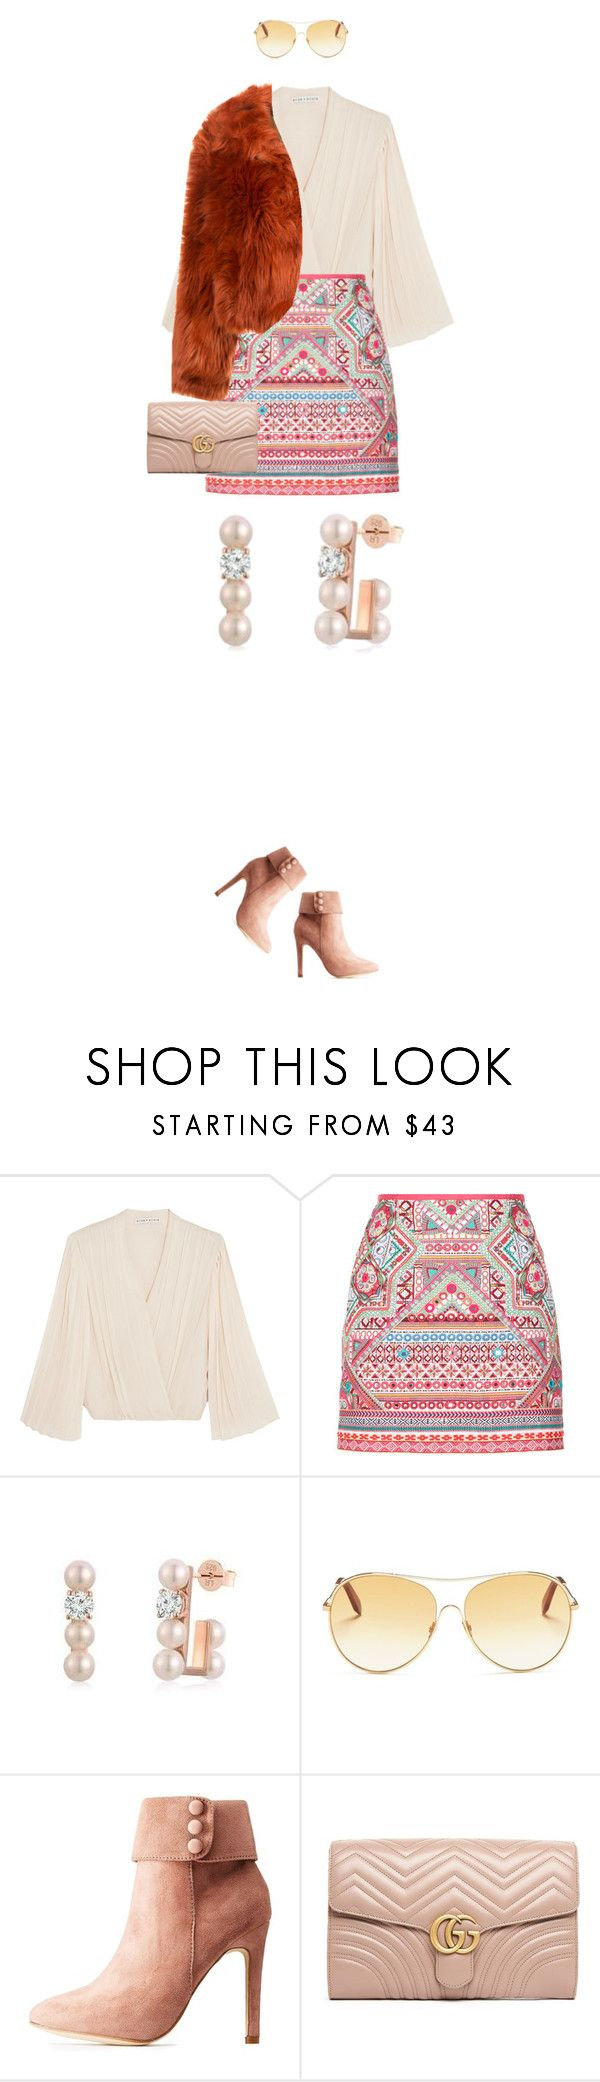 """""""eva1873"""" by evava-c on Polyvore featuring Alice + Olivia, Accessorize, MBLife.com, Victoria Beckham, Hot Kiss, Gucci and Maison Margiela"""